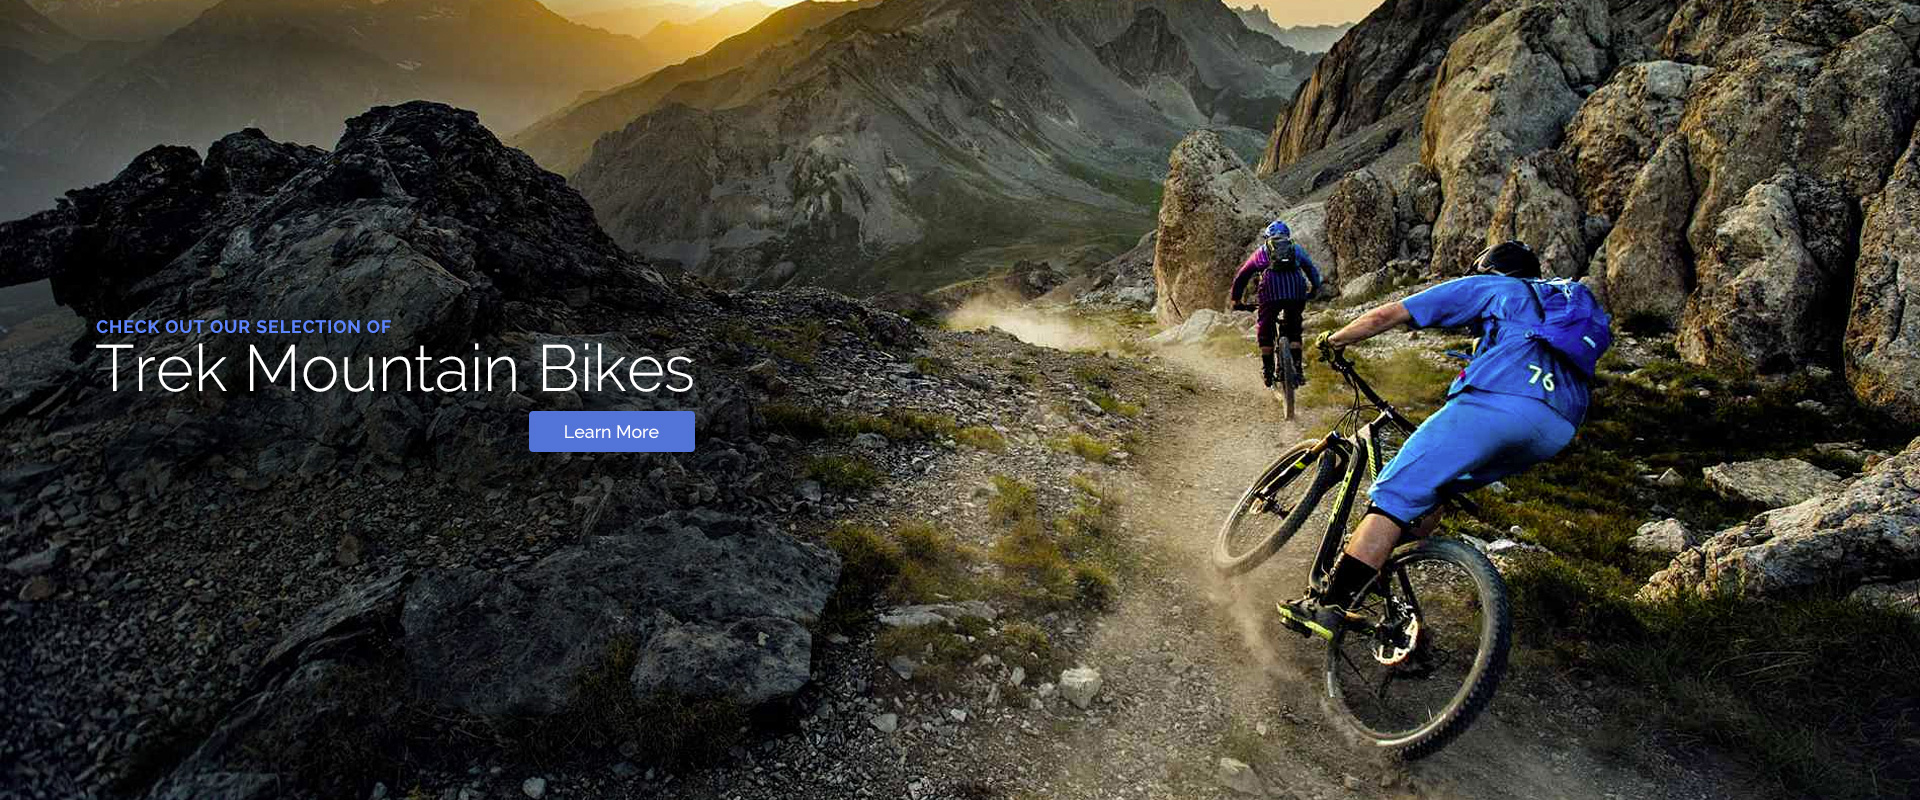 Trek Mountain Bikes